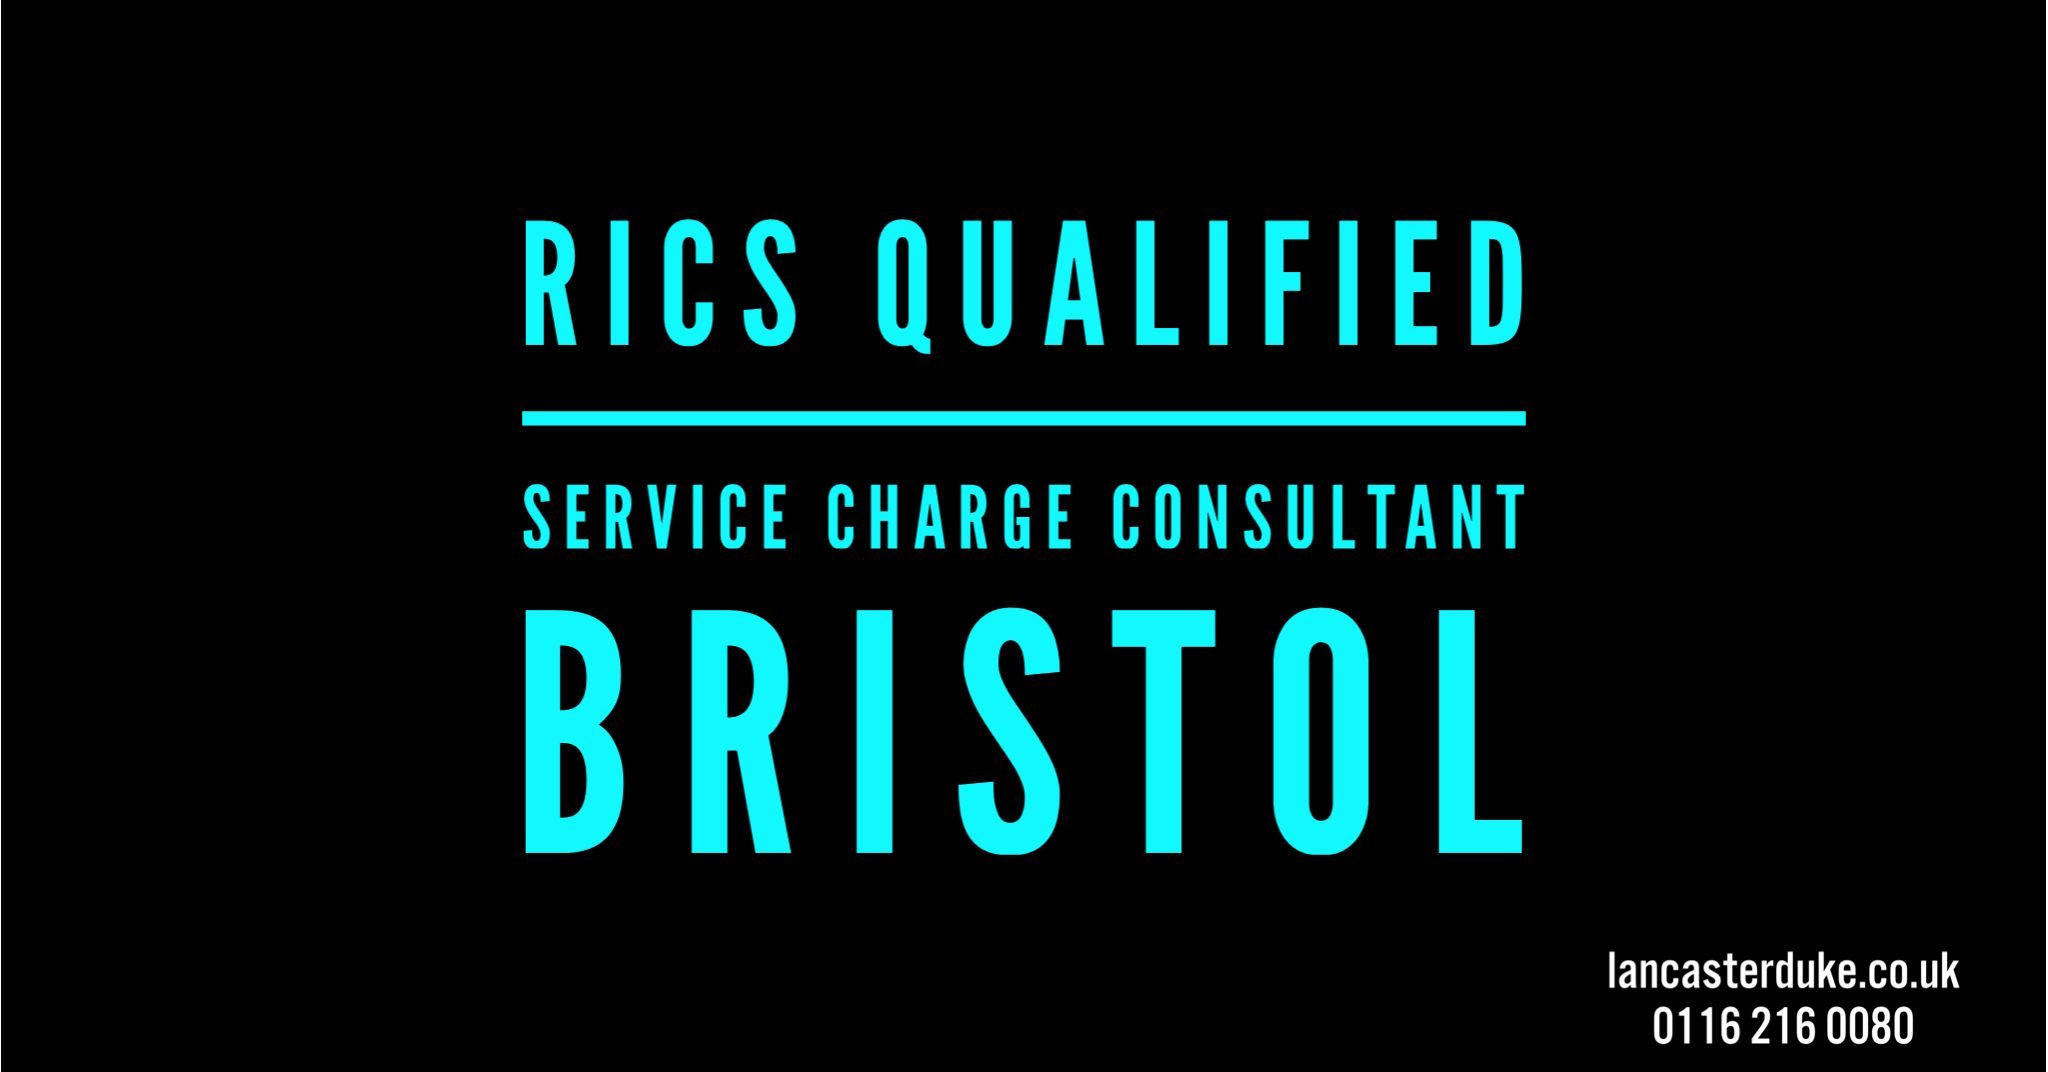 Service Charge Consultant